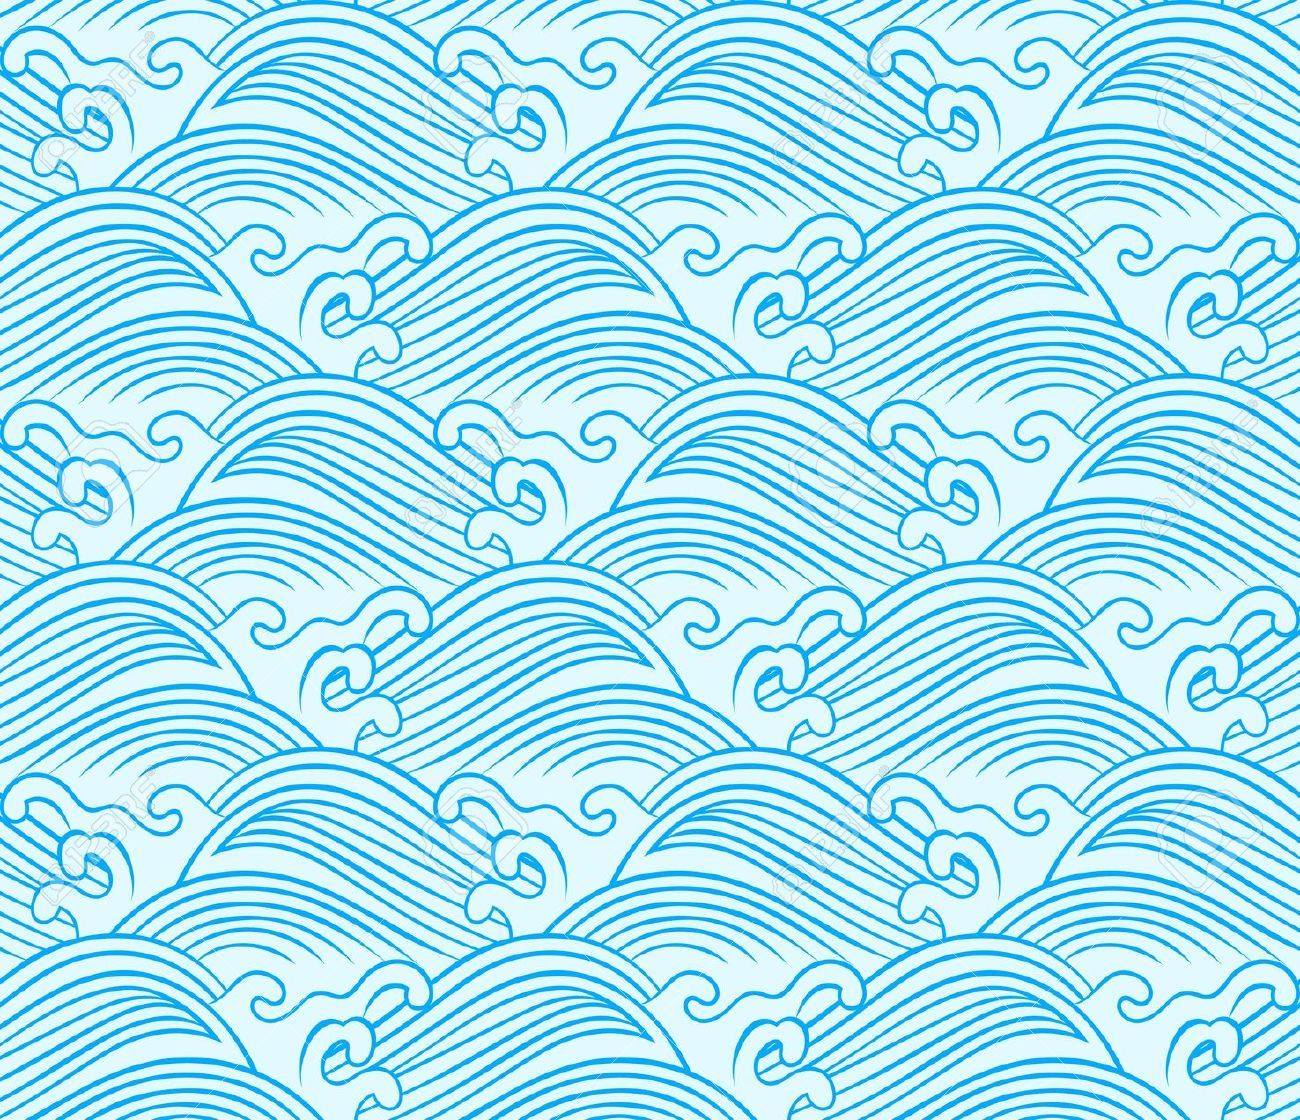 Pin by April Mason on graphic arts | Japanese waves, Paper ...